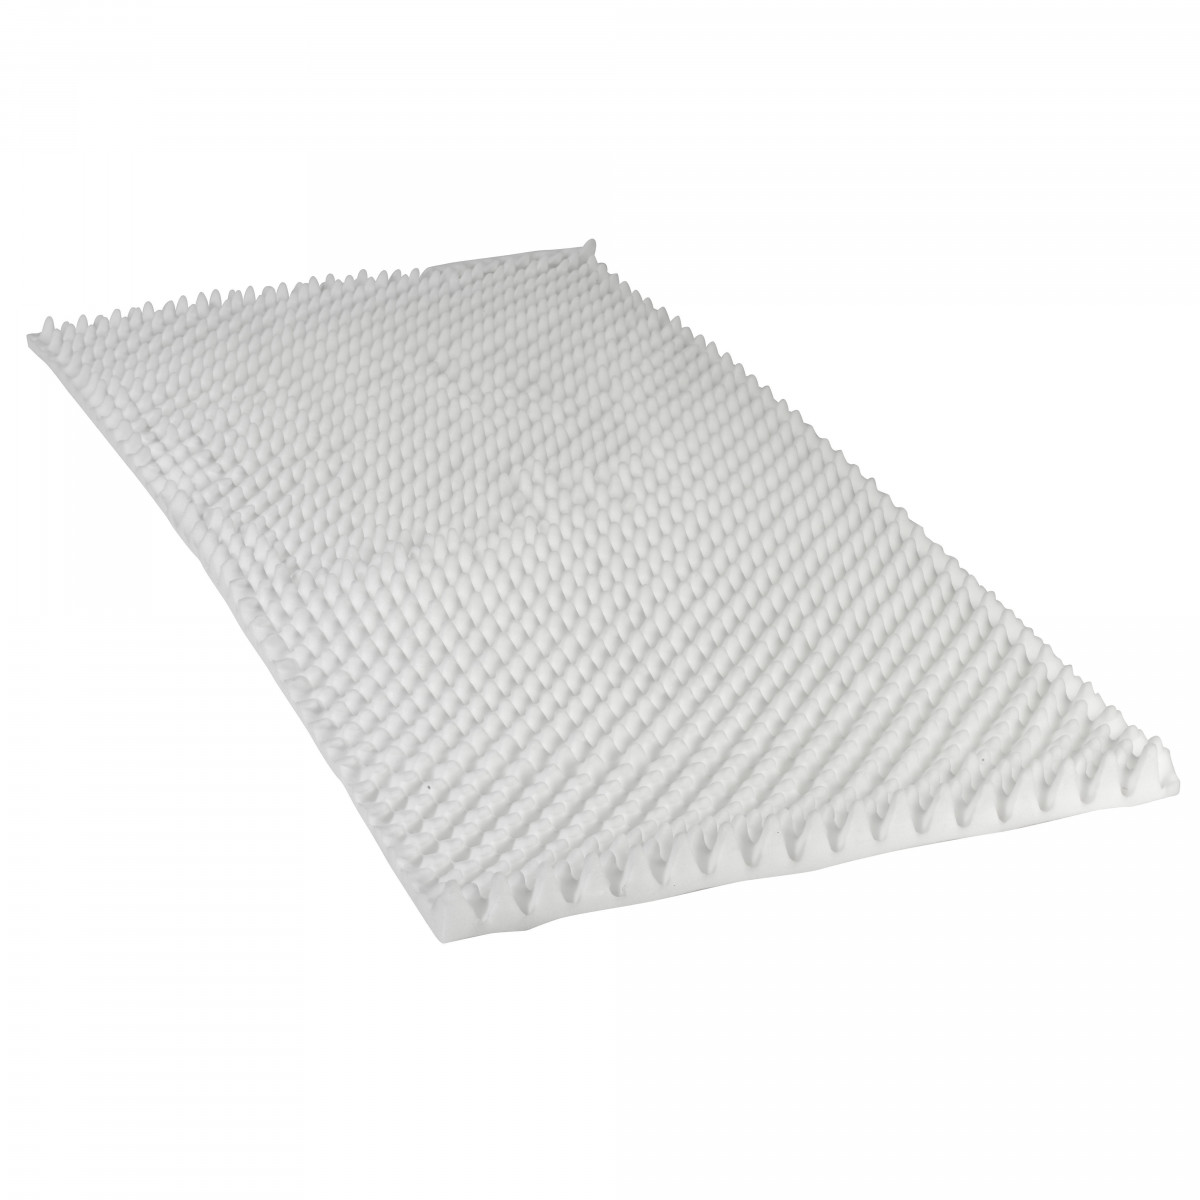 convoluted foam bed pad 233